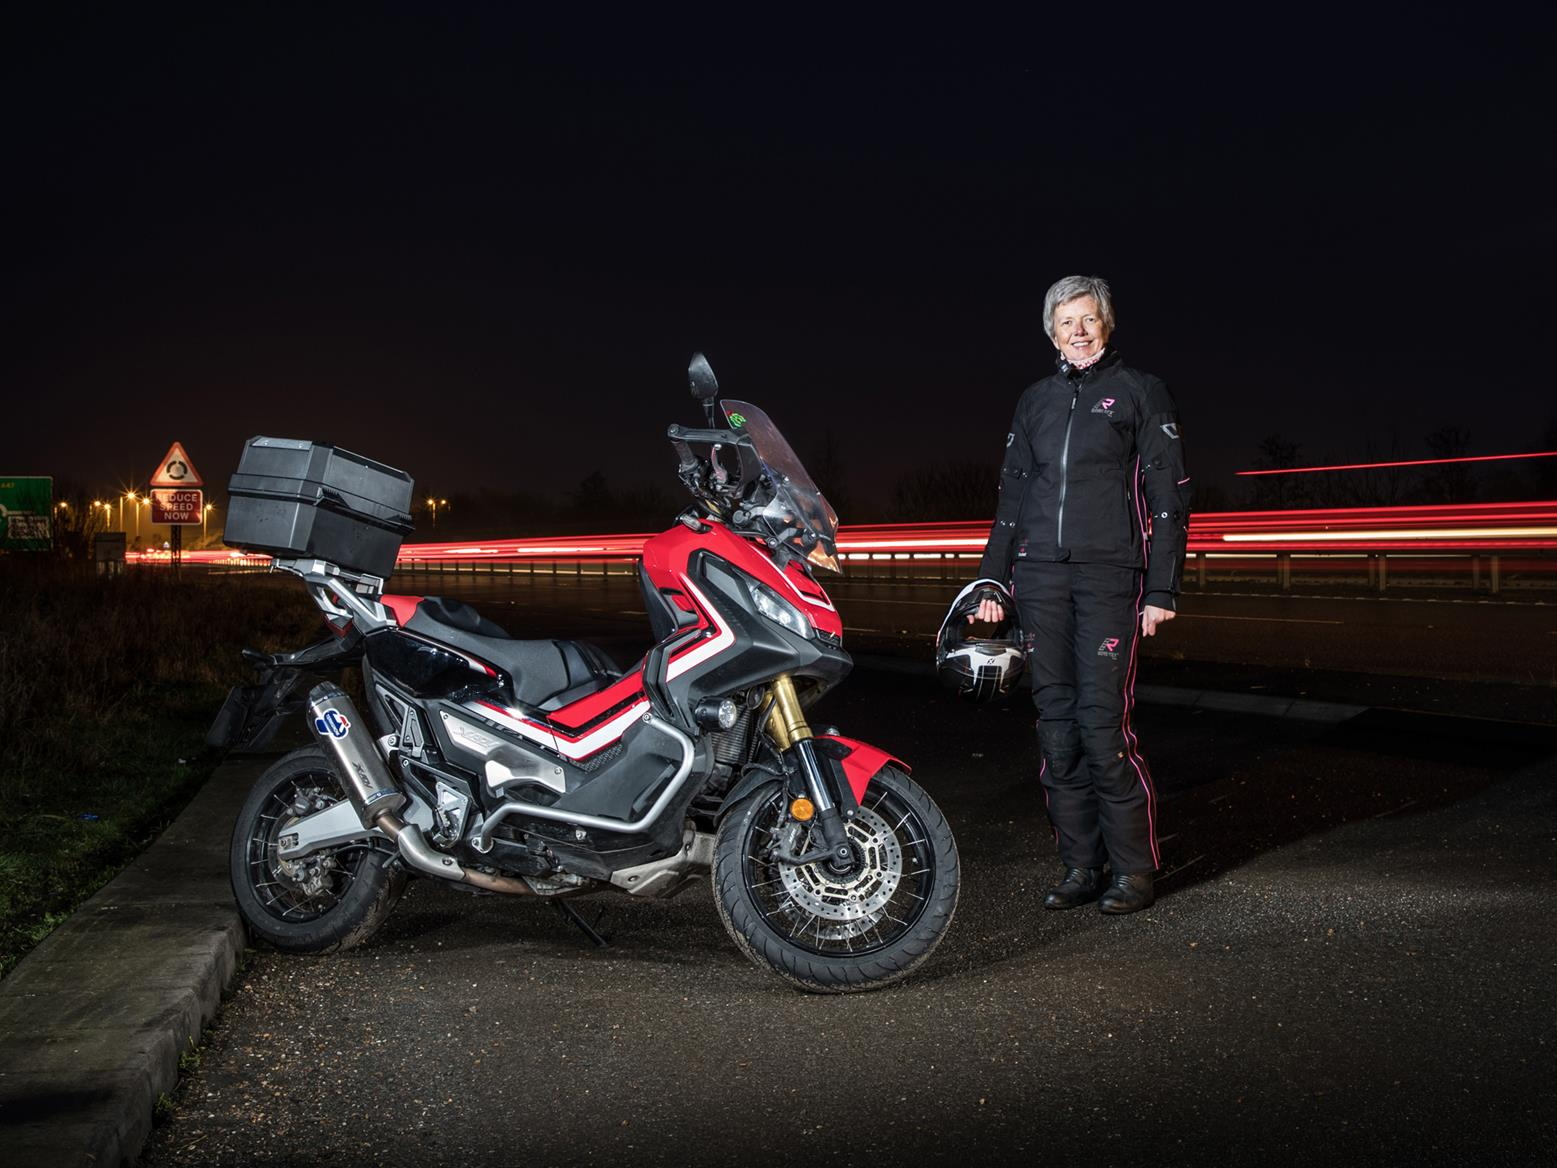 High-vis detailing on your leathers could make the difference when riding in darkness